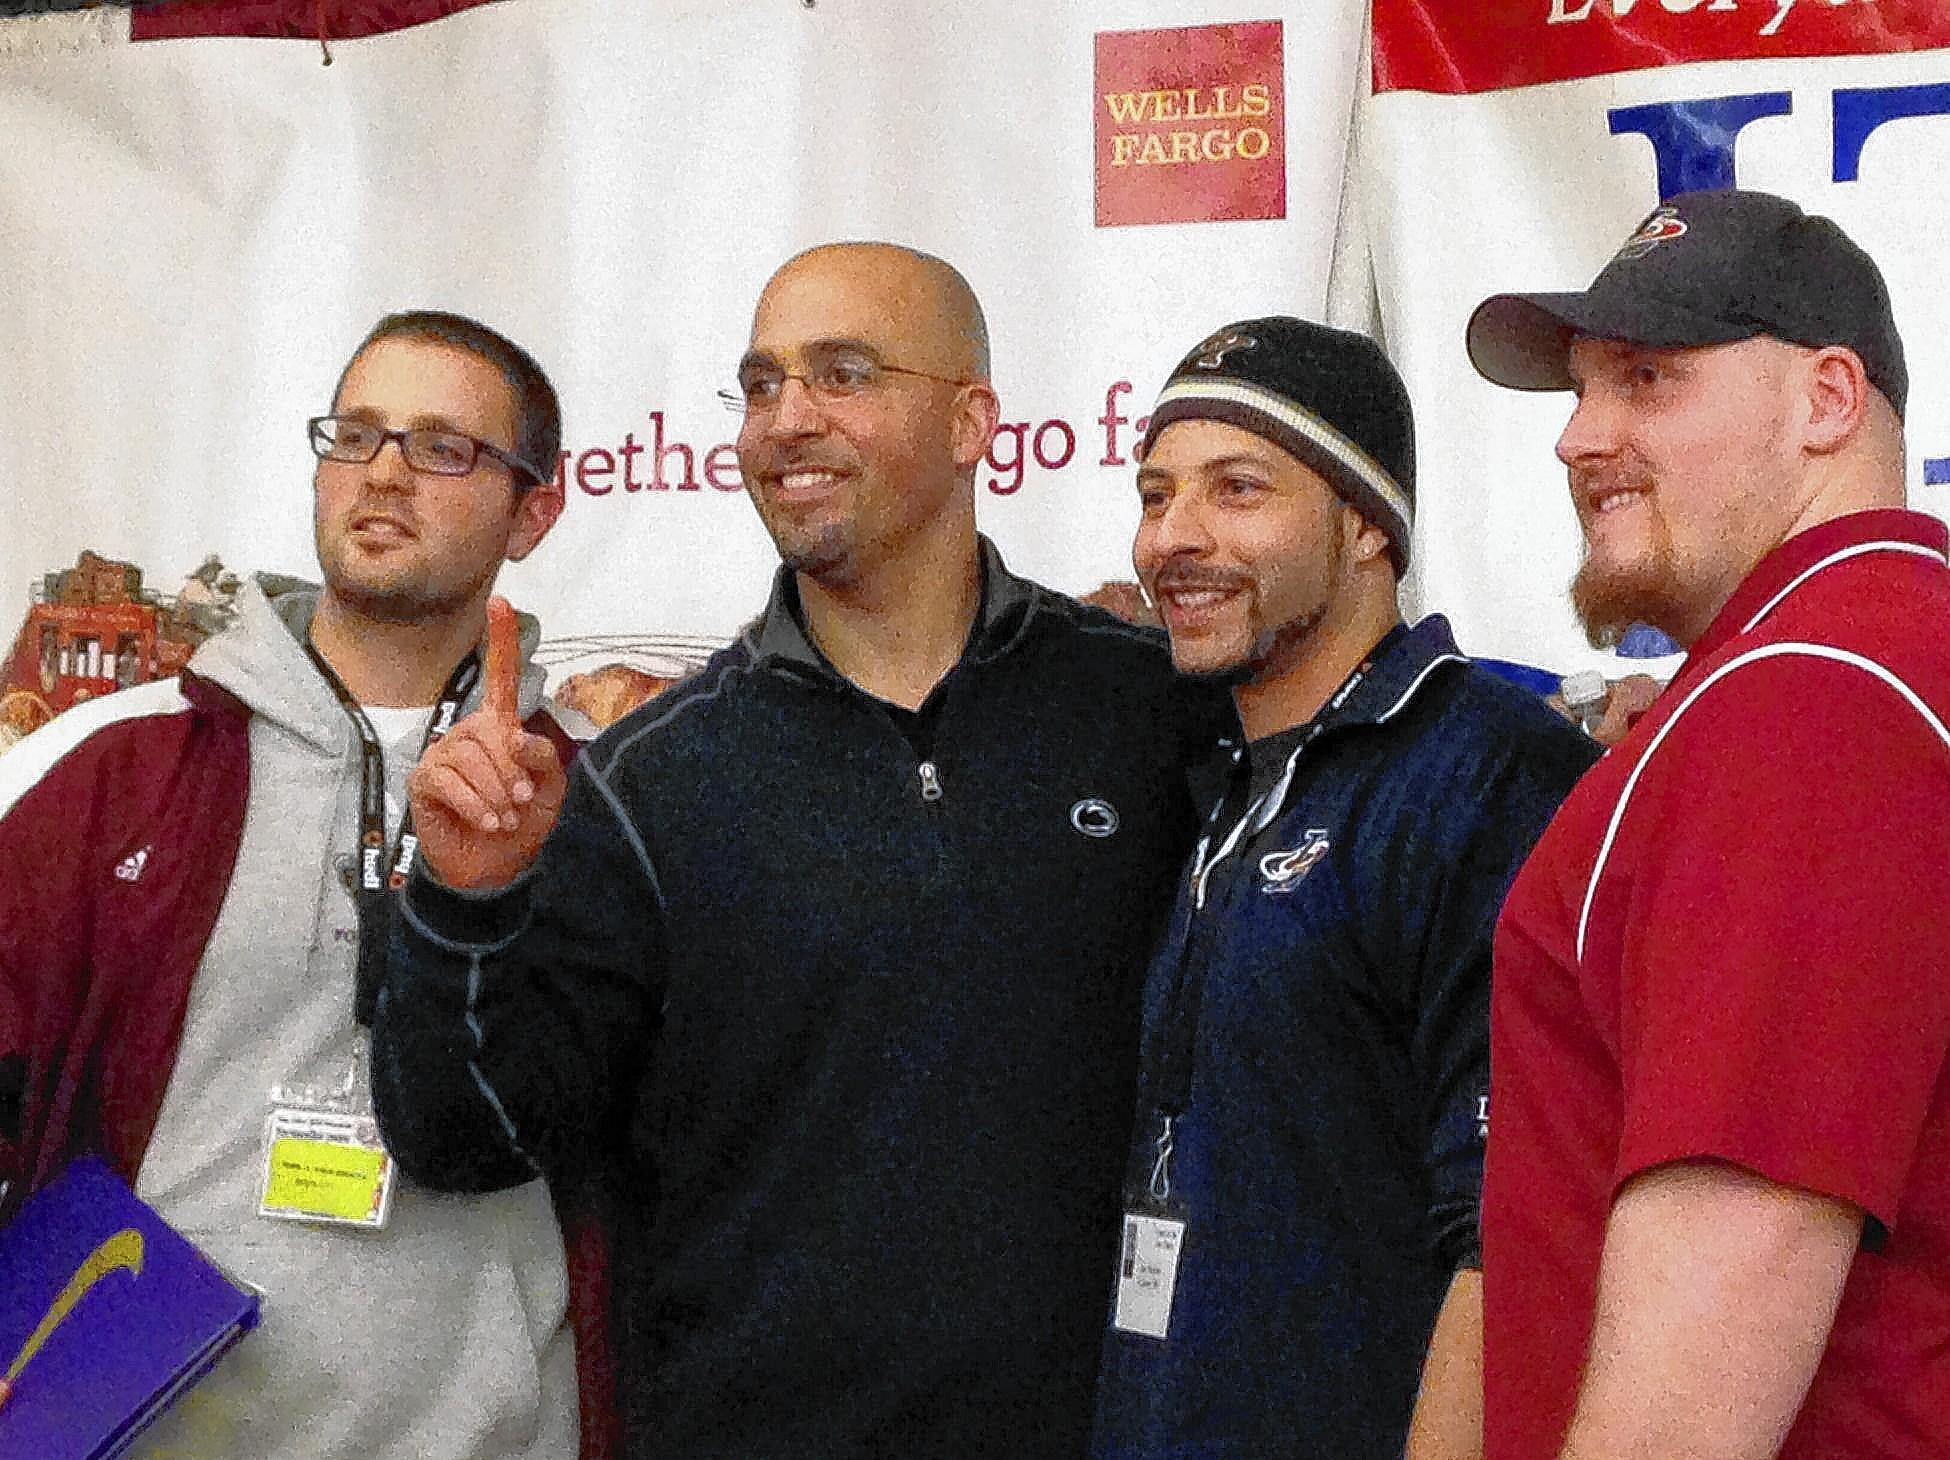 Penn State football coach James Franklin poses with area football coaches at the Nike Coach of the Year clinic Friday at the Holiday Inn Fogelsville.